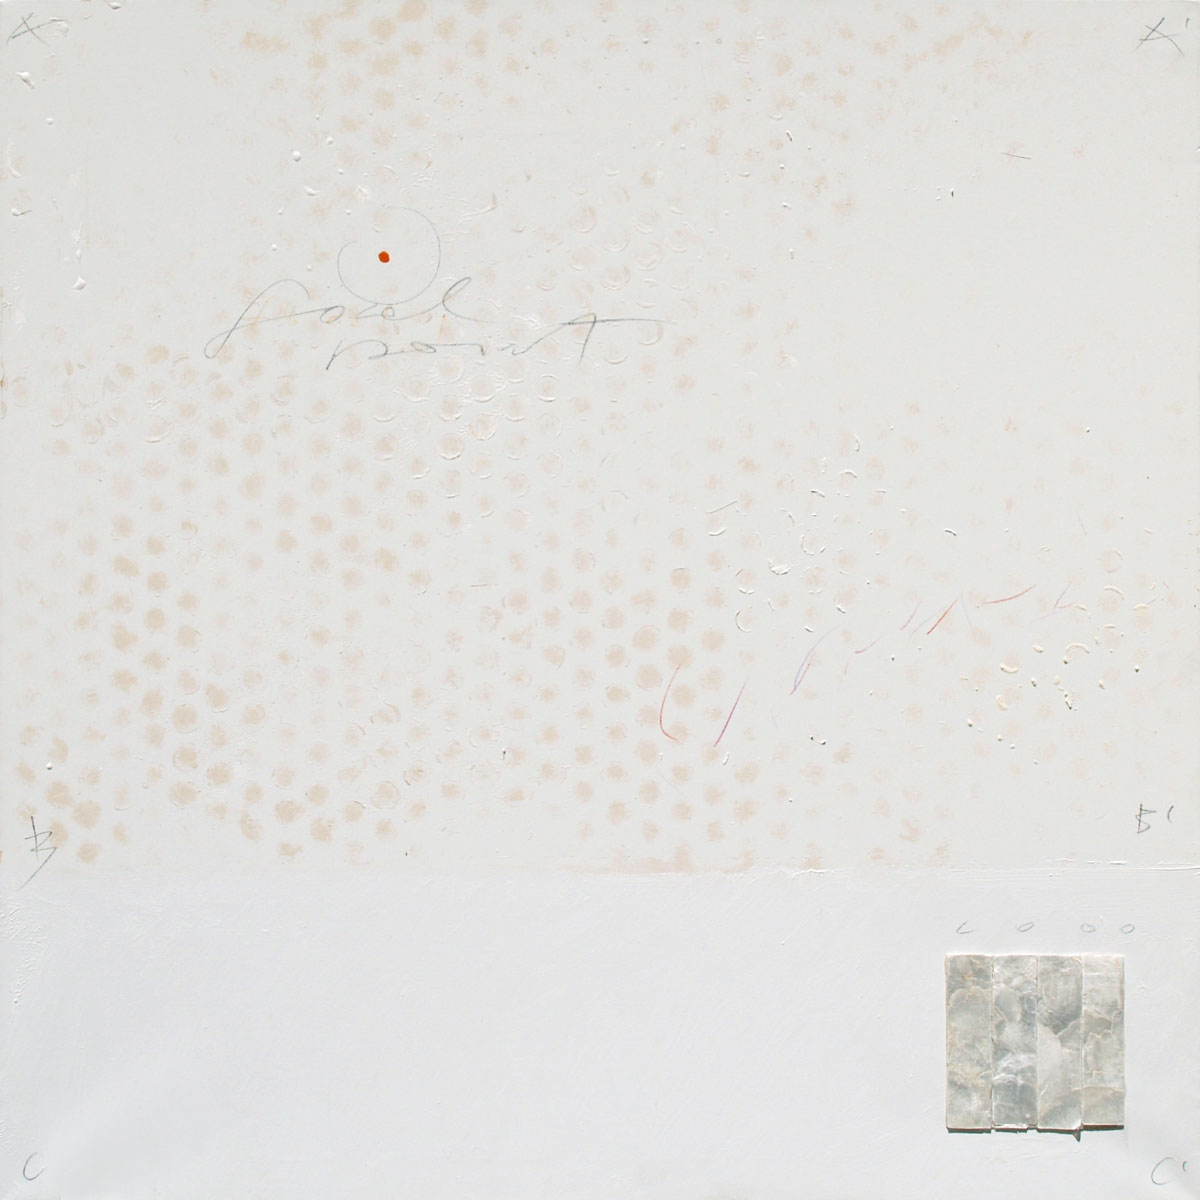 Advisual 11, 2009, acrylic, mother-of-pearl, chalk, pencil on canvas,70x70 cm